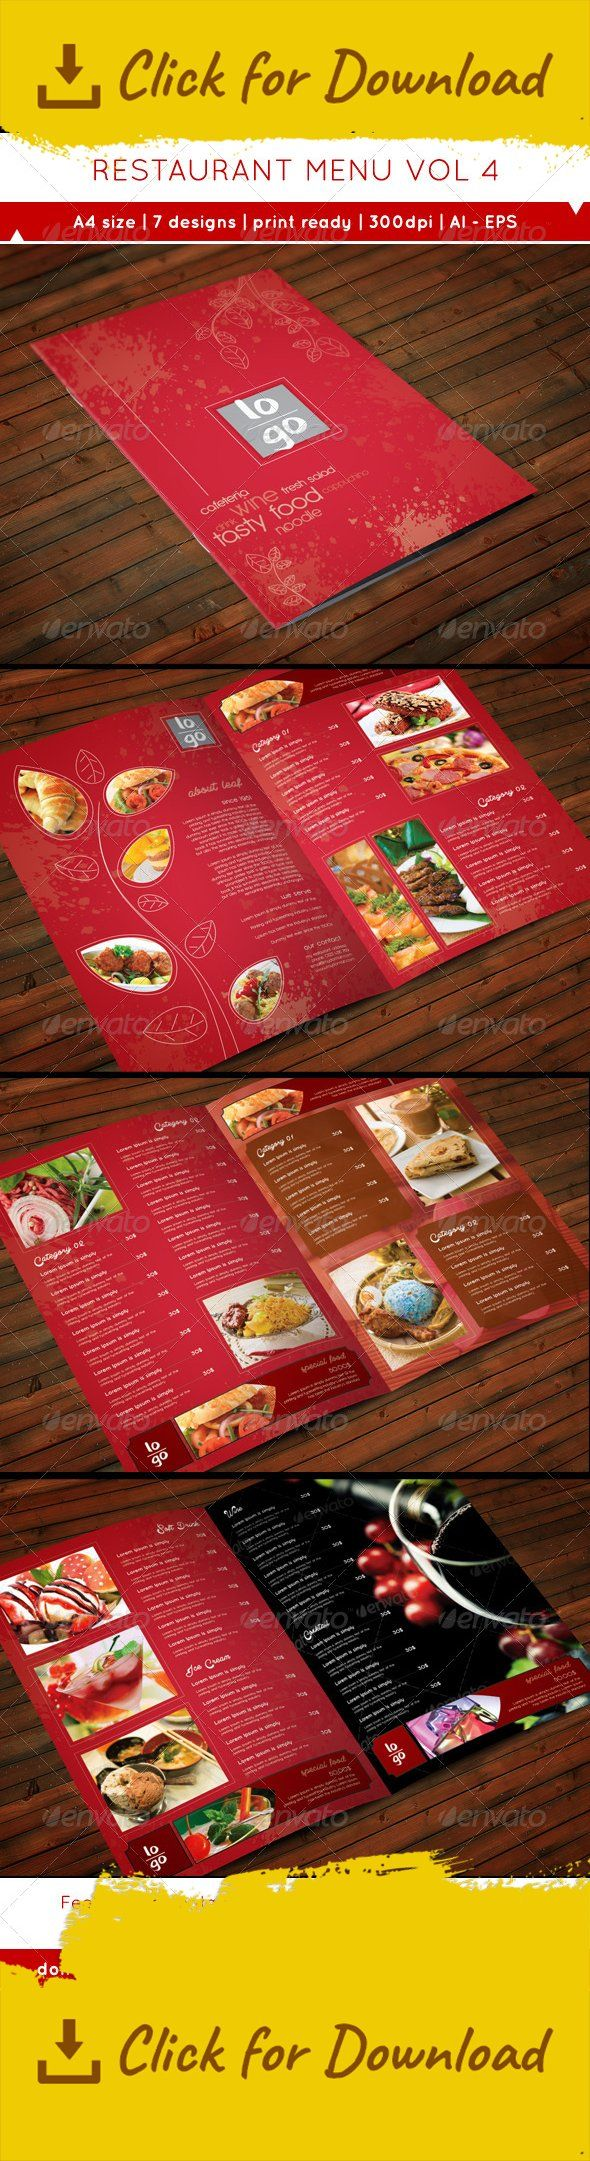 beef, business, cafeteria, chicken, clean, commerce, corporate, design, flyer, food, menu, modern, print, professional, promotion, restaurant, smoothie, template, wine An leaf concept restaurant menu. They come with A4 (21.7×29cm) size and 7 design templates. You can use it for an individual menu or merge it for one book. You can duplicate or combine it anyway you want it to be.  - 7 designs for your choice.  - The design have 4mm bleed, so it ready to print.  - AI and EPS (version CS5...